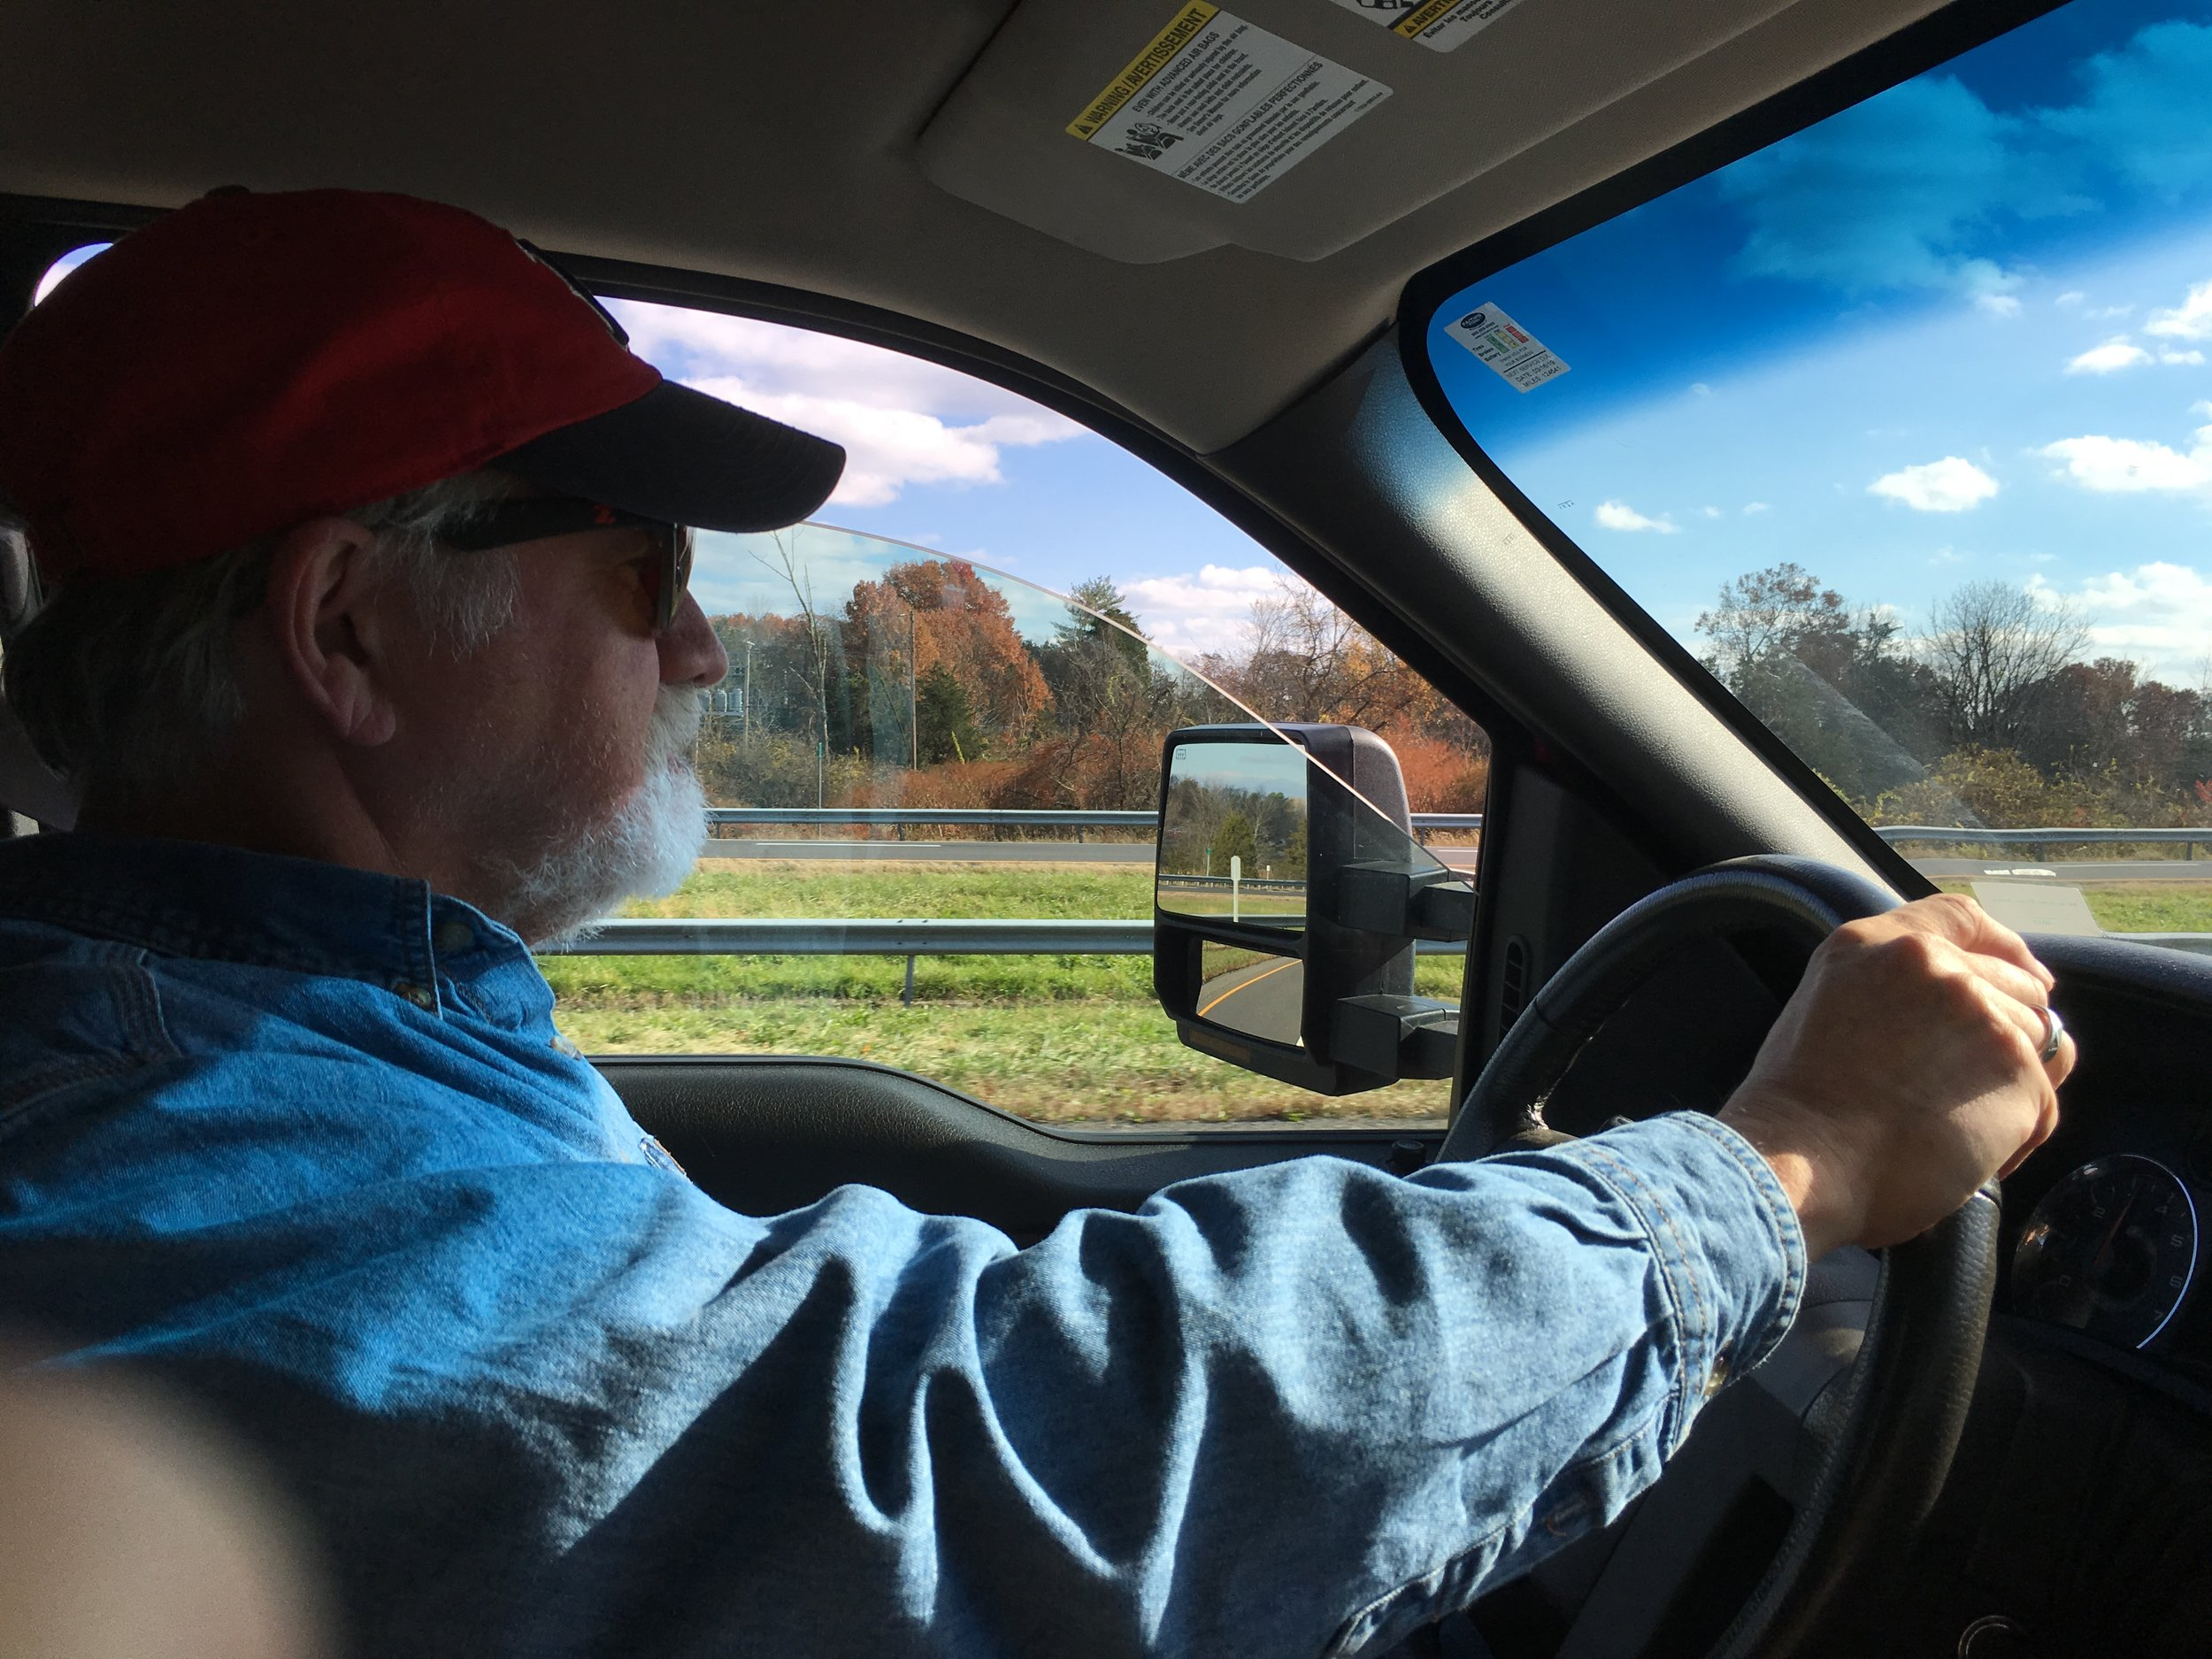 Columnist Rick Holmes behind the wheel of his truck, somewhere in the Midwest.